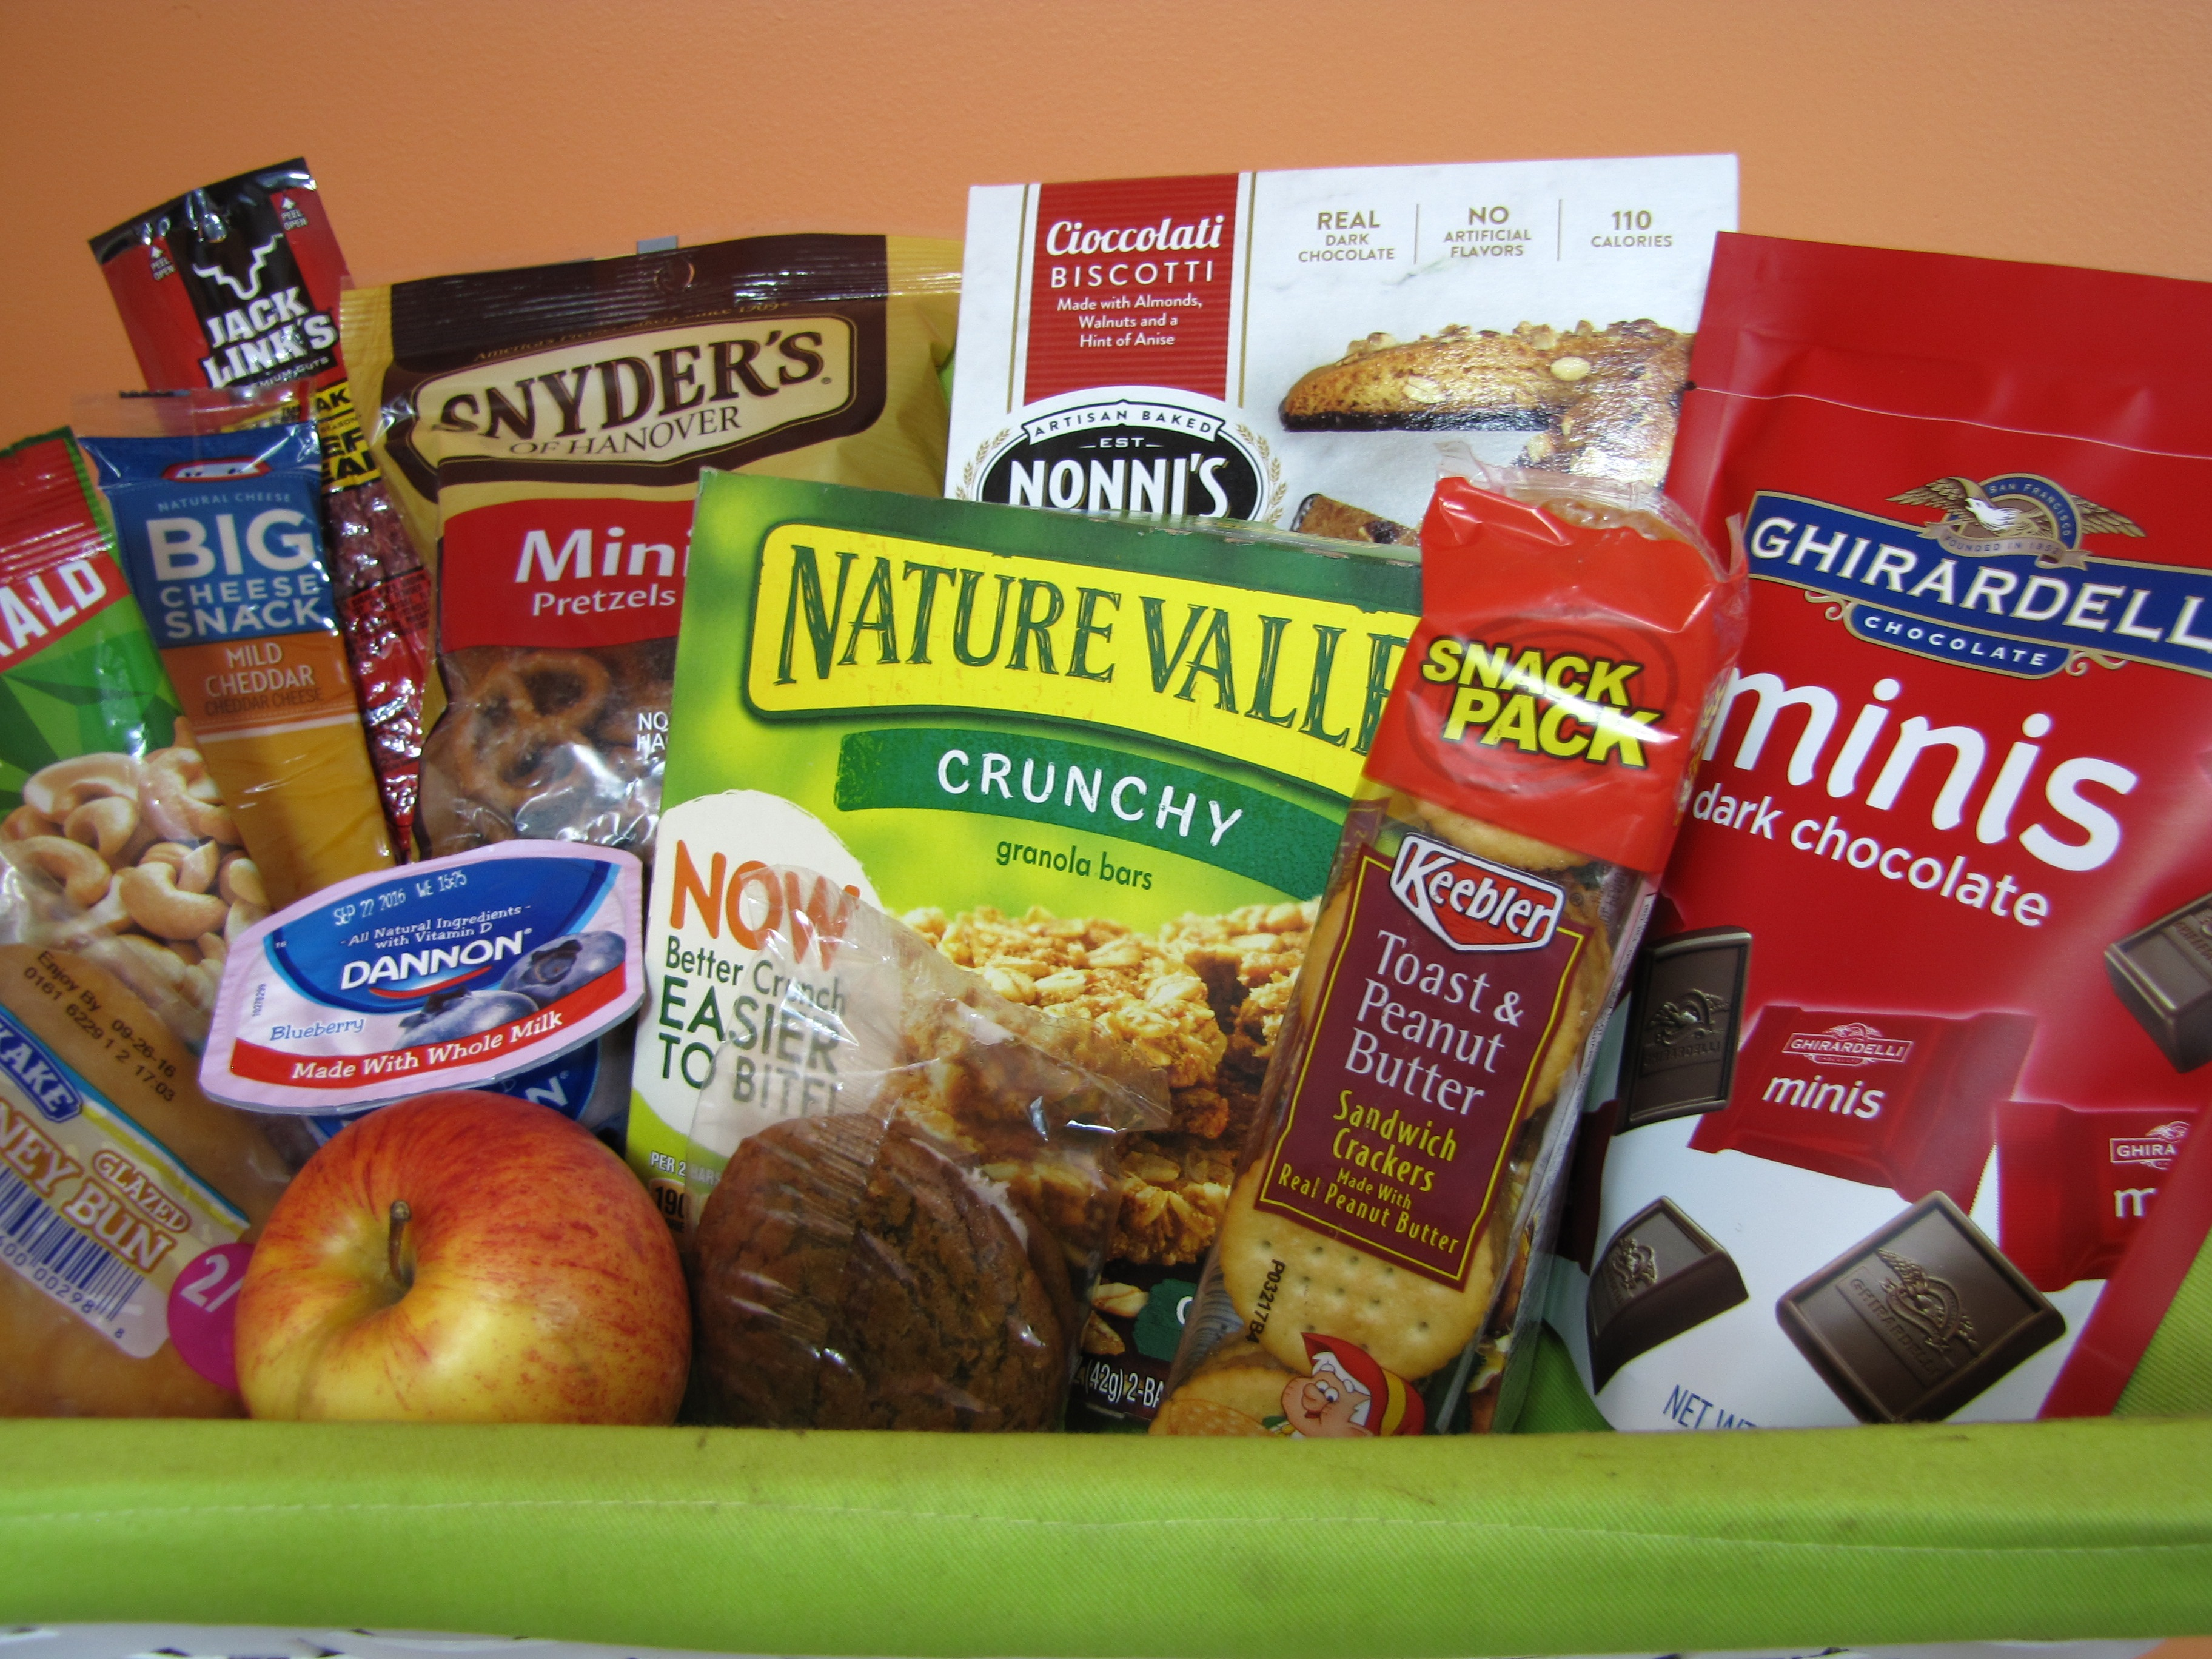 Which Snack Would You Pick to Stay Healthy and NOT Wreck Your Diet?